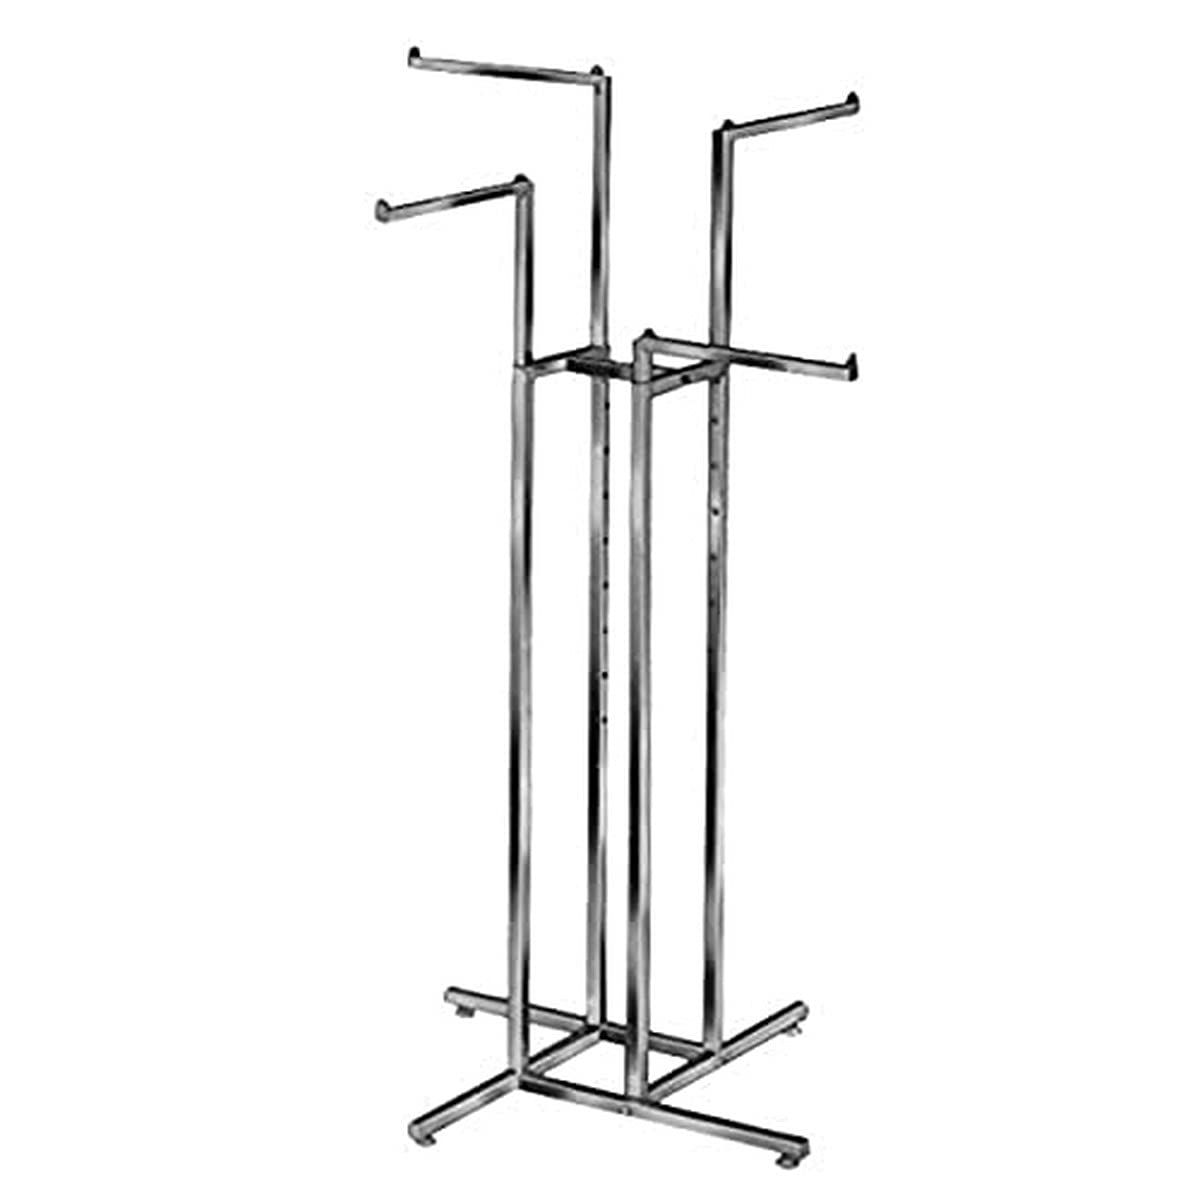 Cheap super special price Clothing Rack – Max 47% OFF Heavy Duty Chrome Adjustable Height Way 4